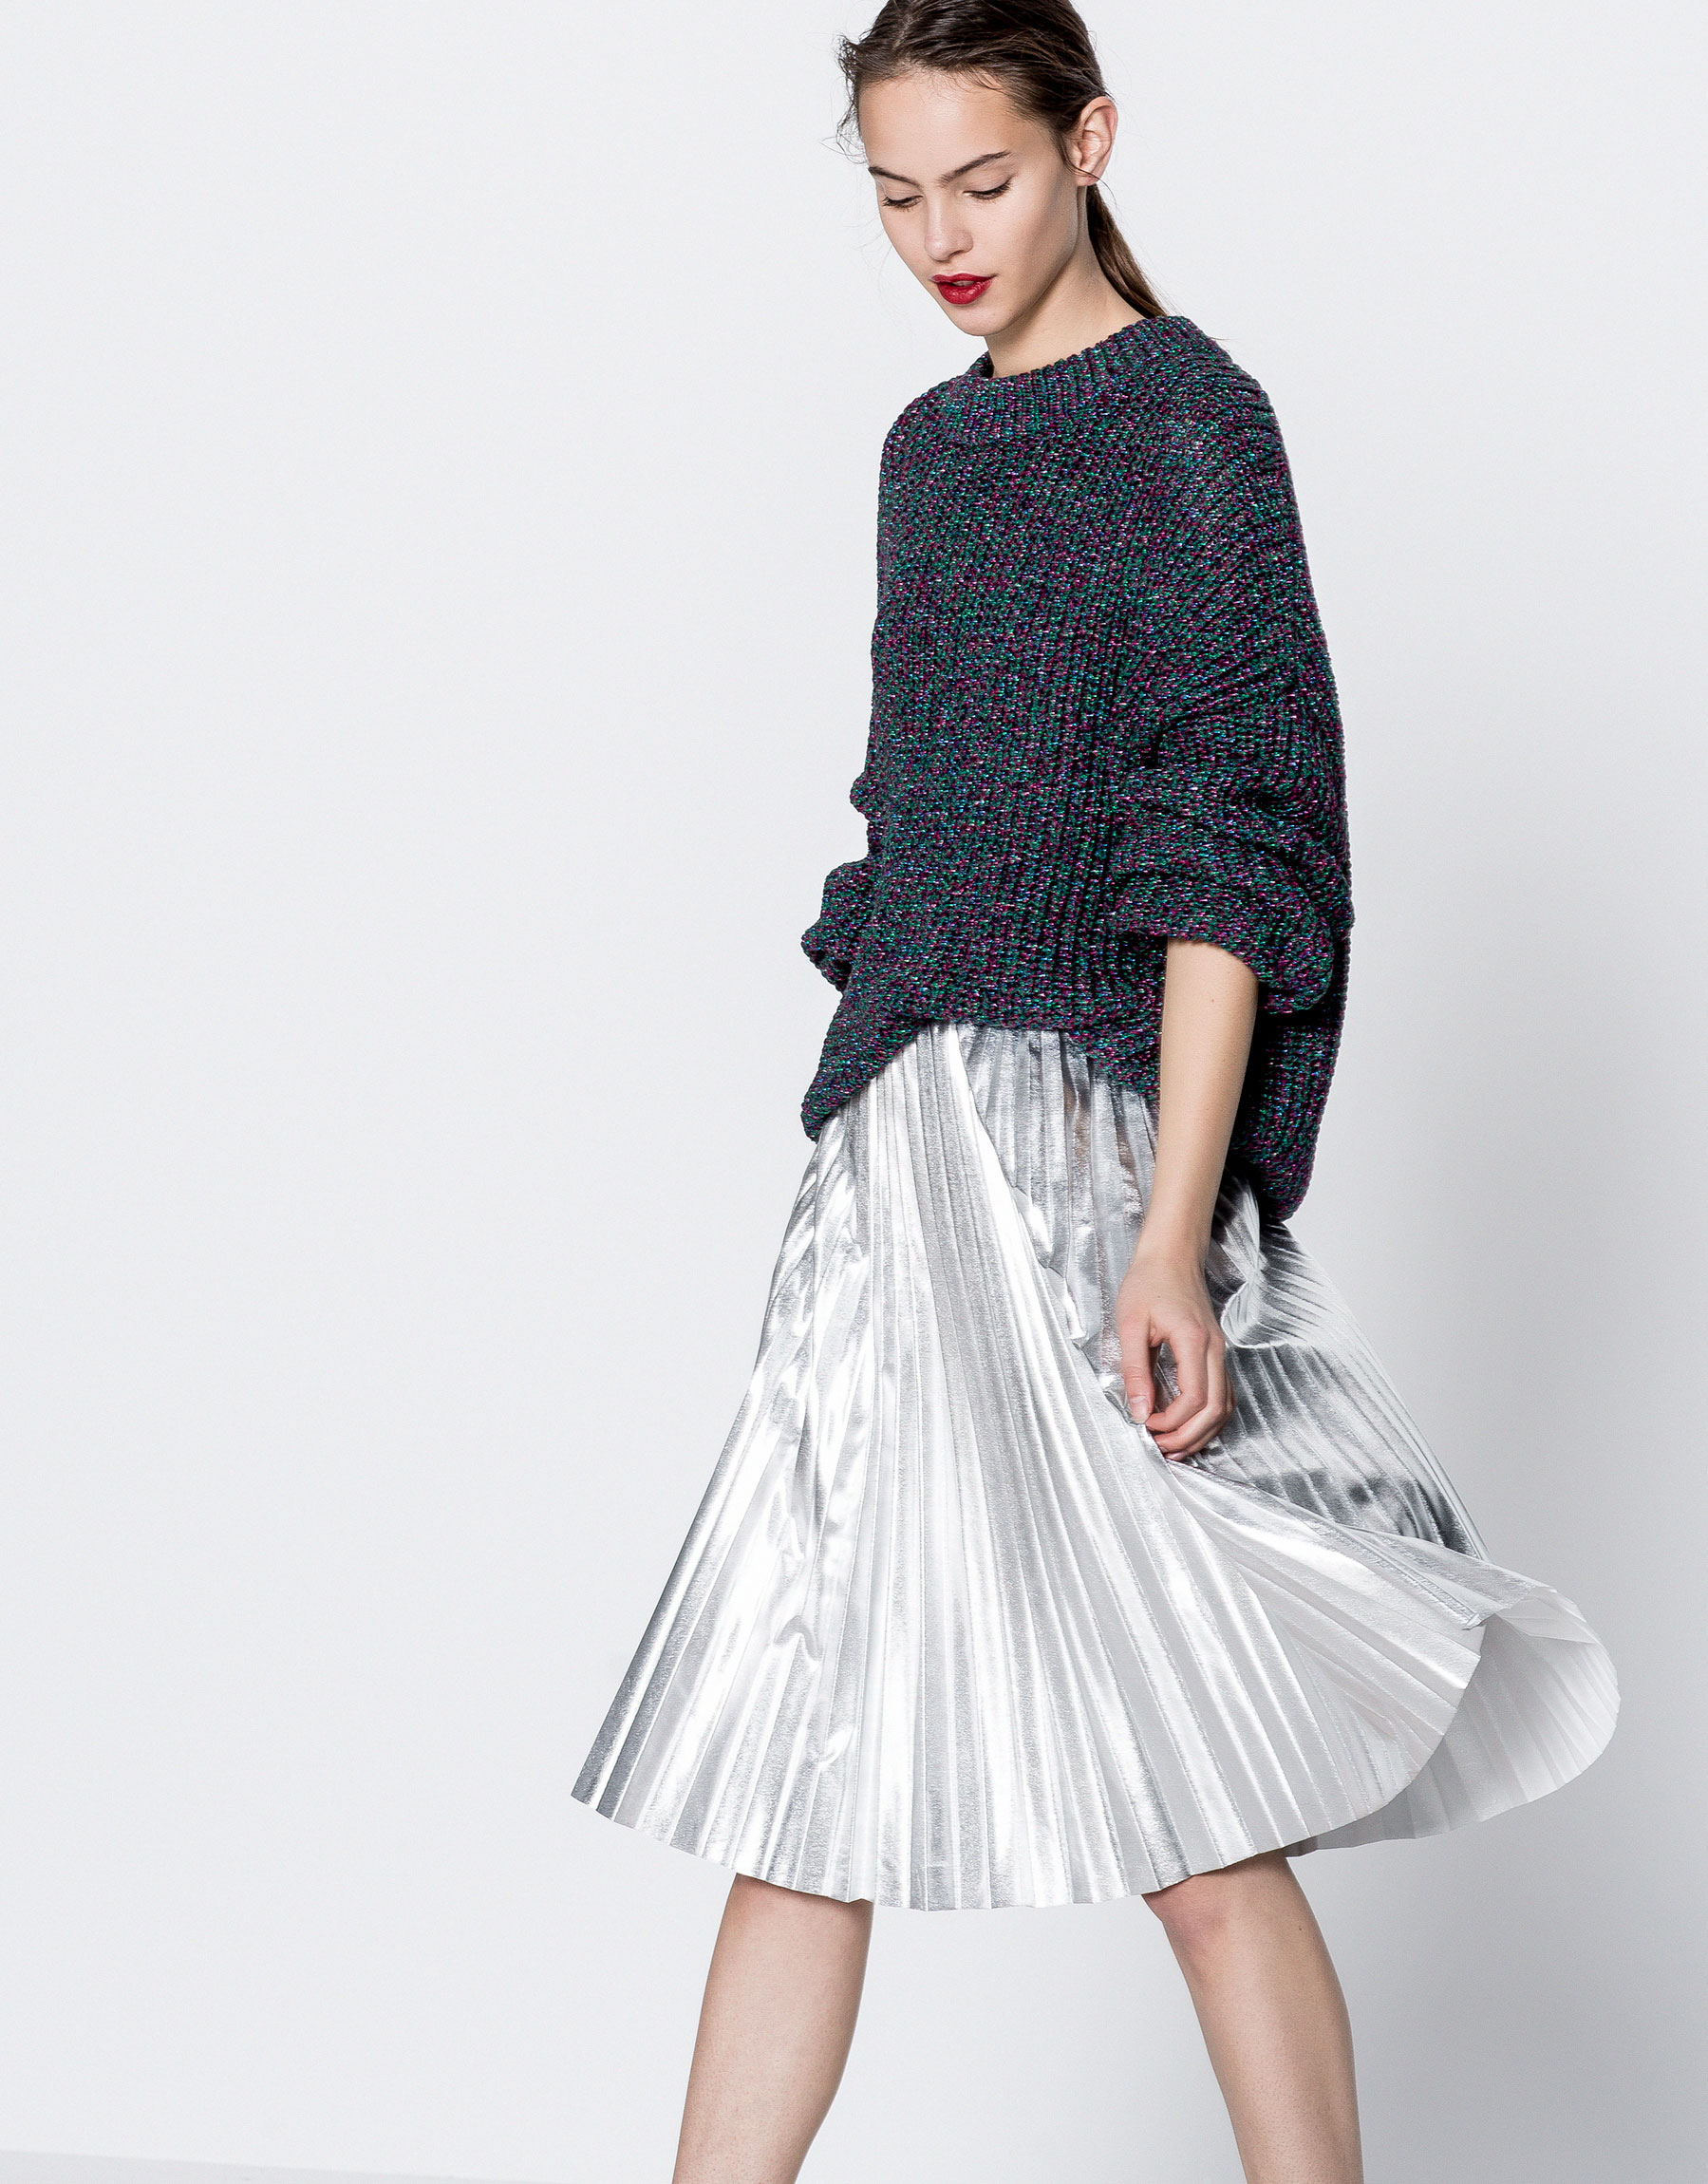 Shiny fabric oversized sweater